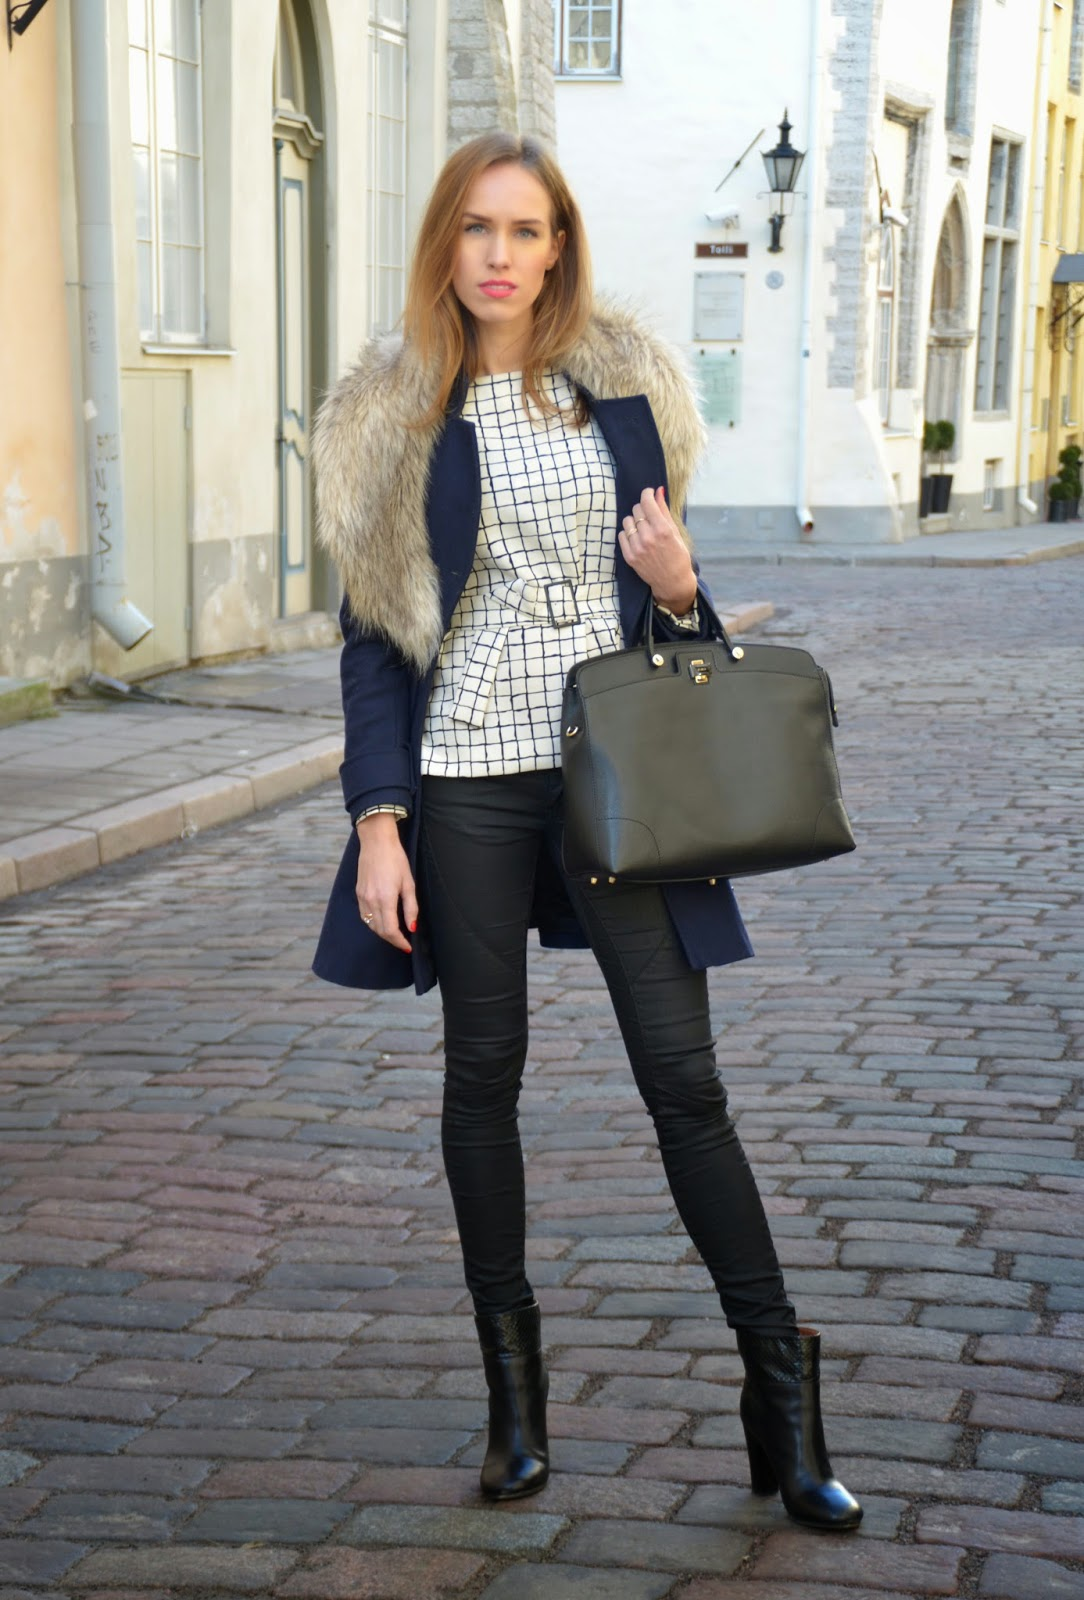 winter-outfit-black-jeans-blue-coat-fur-collar-white-top